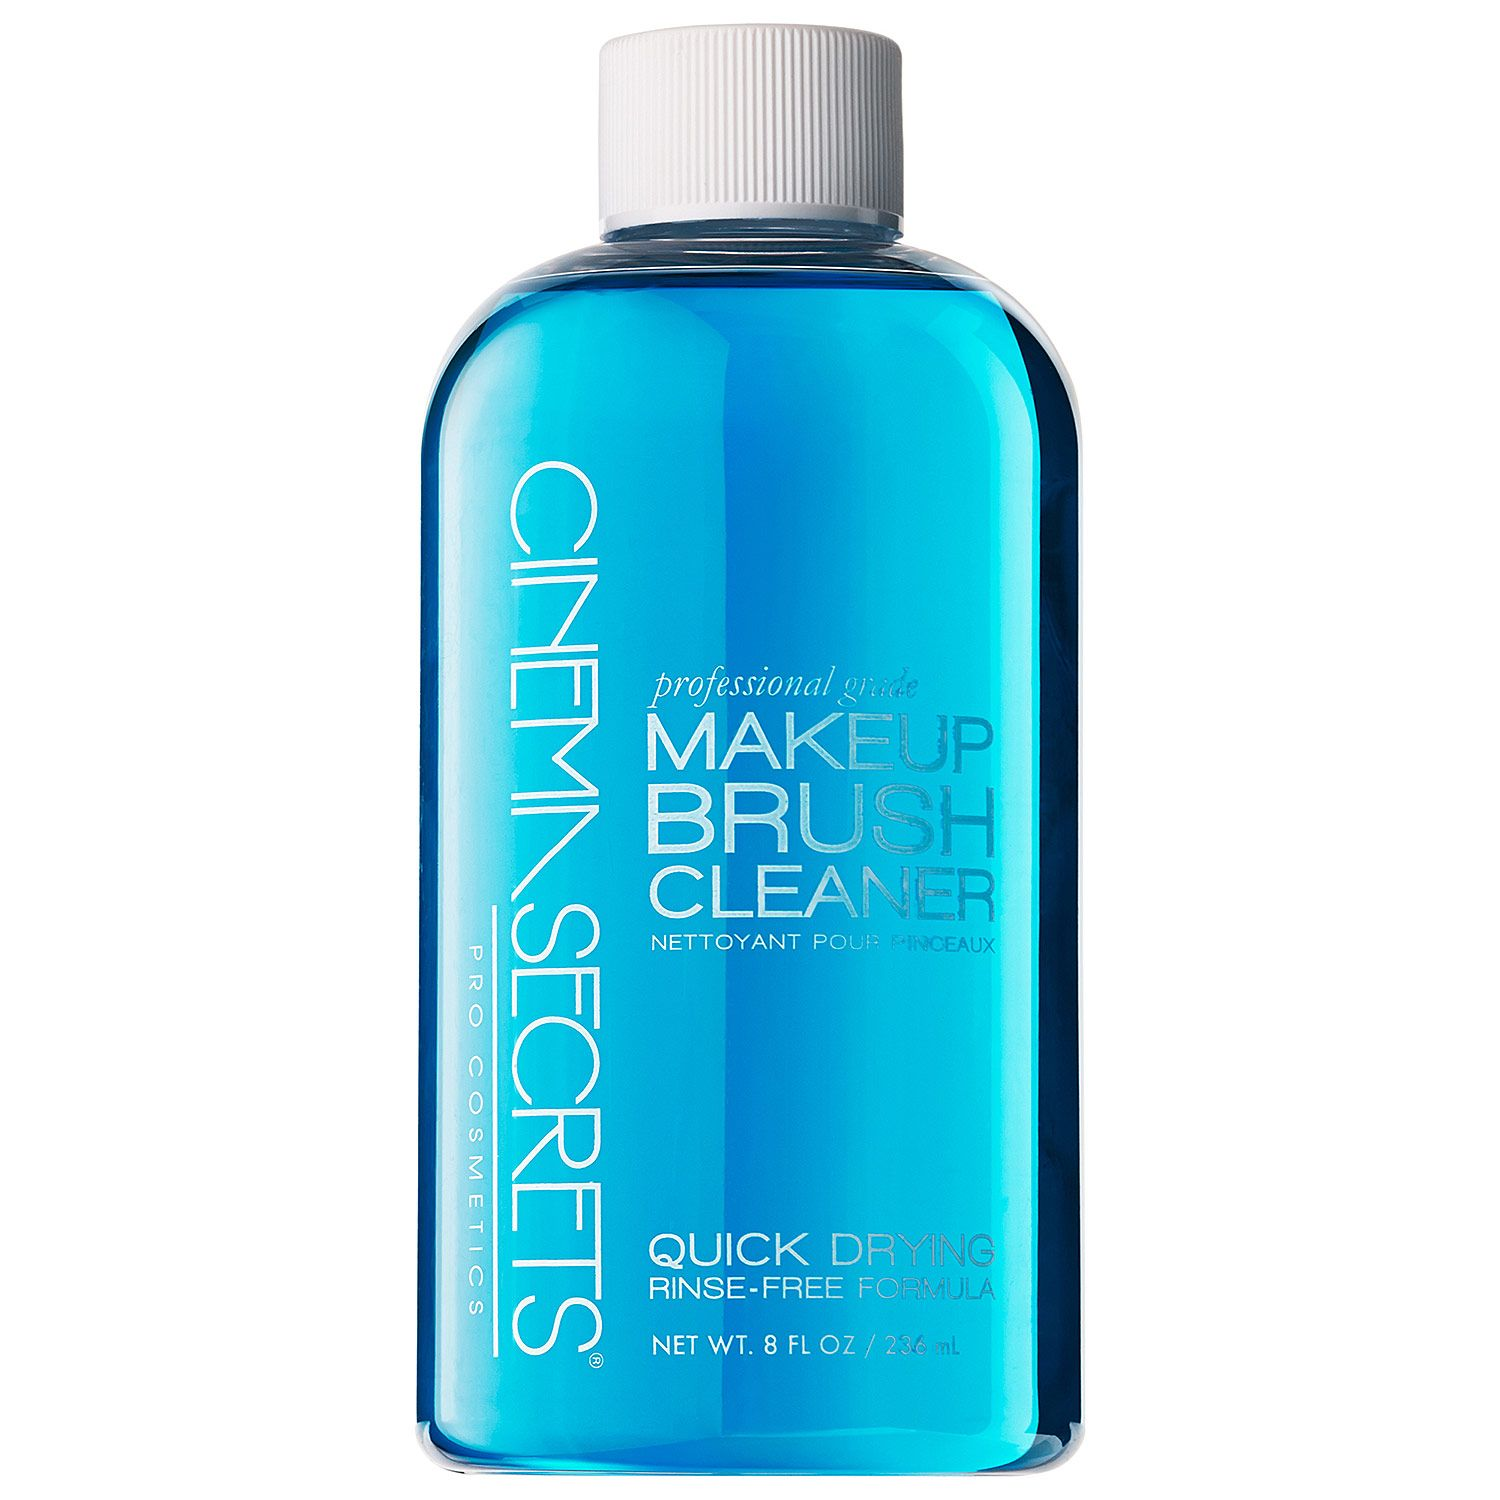 Makeup Brush Cleaner Cinema Secrets Sephora Makeup